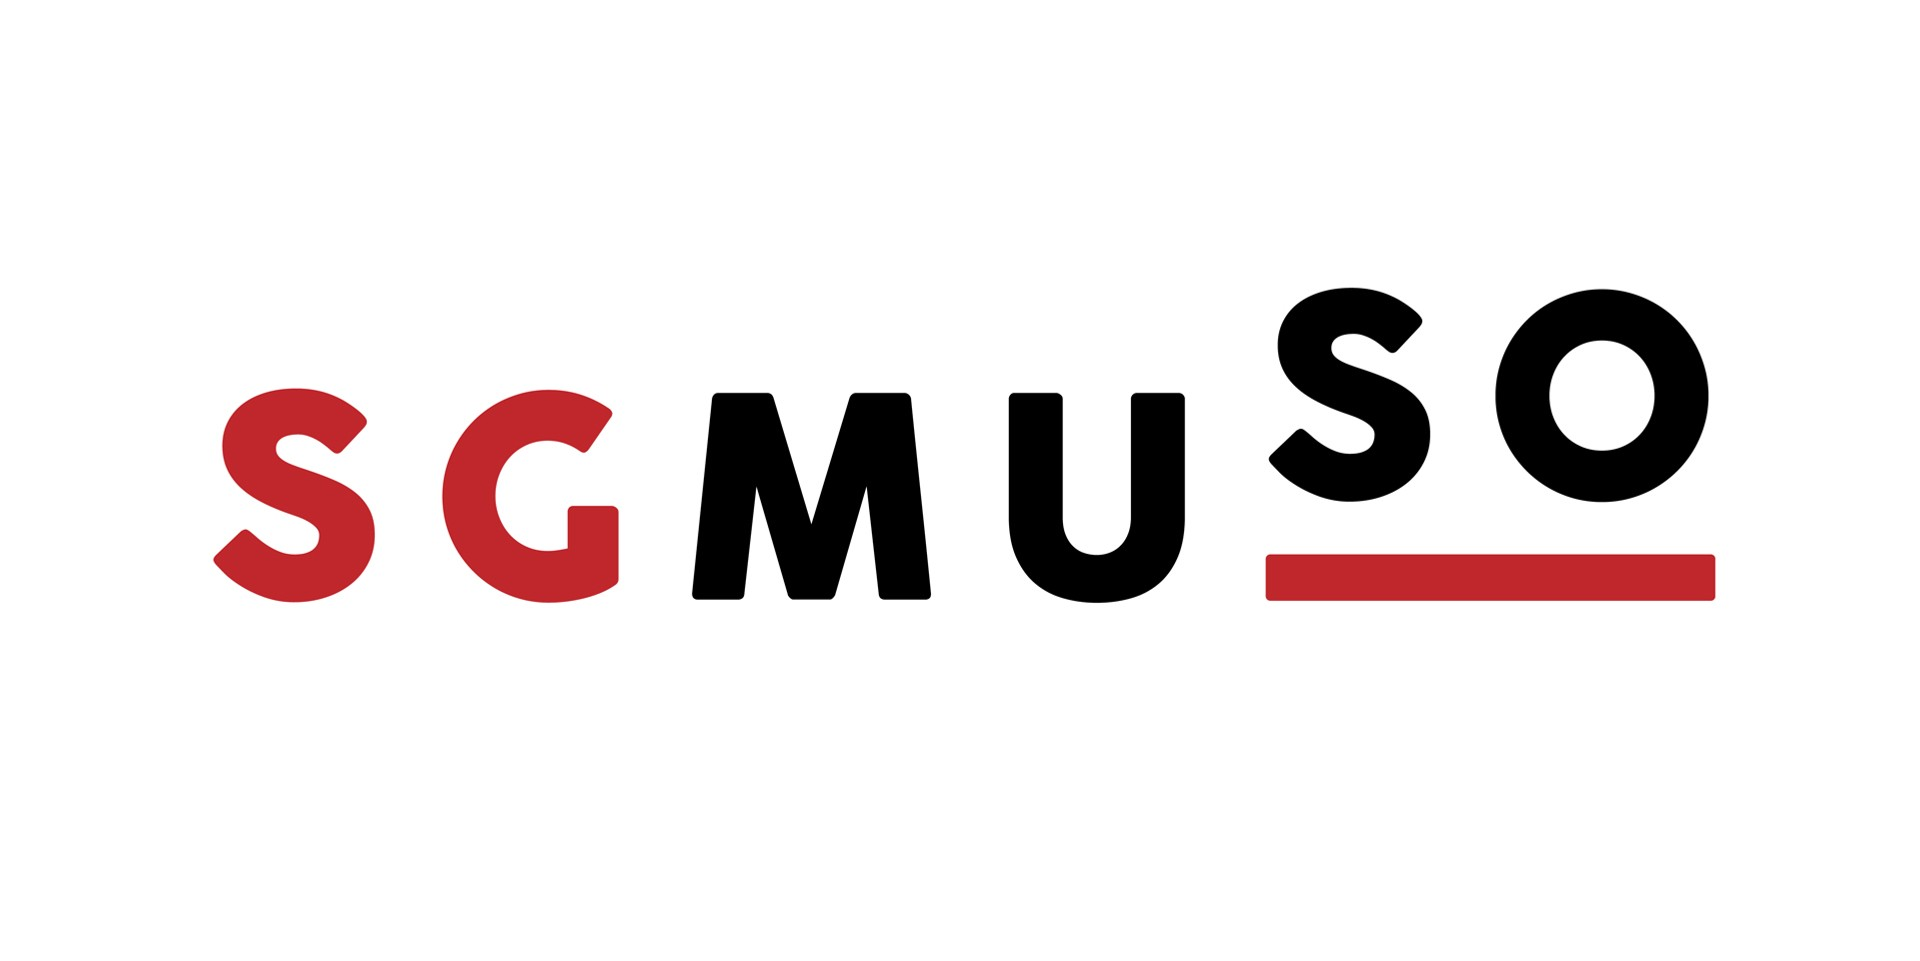 SGMUSO launches membership scheme, details plans and initiatives for future